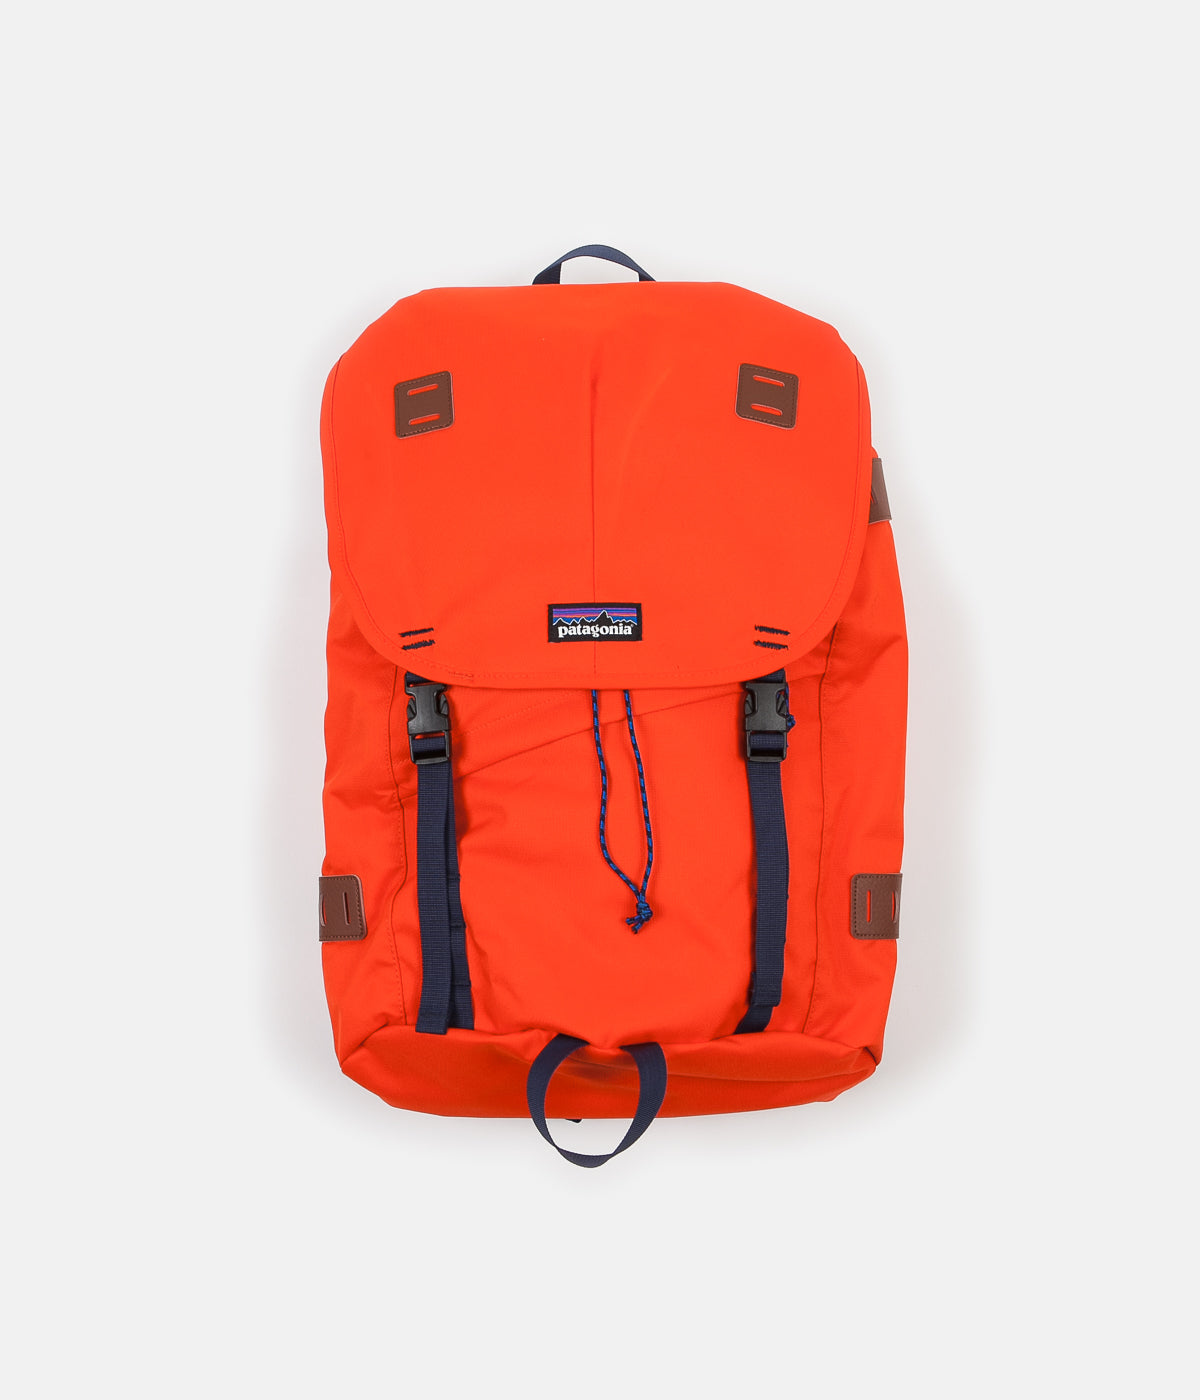 Patagonia Arbor Backpack - Paintbrush Red